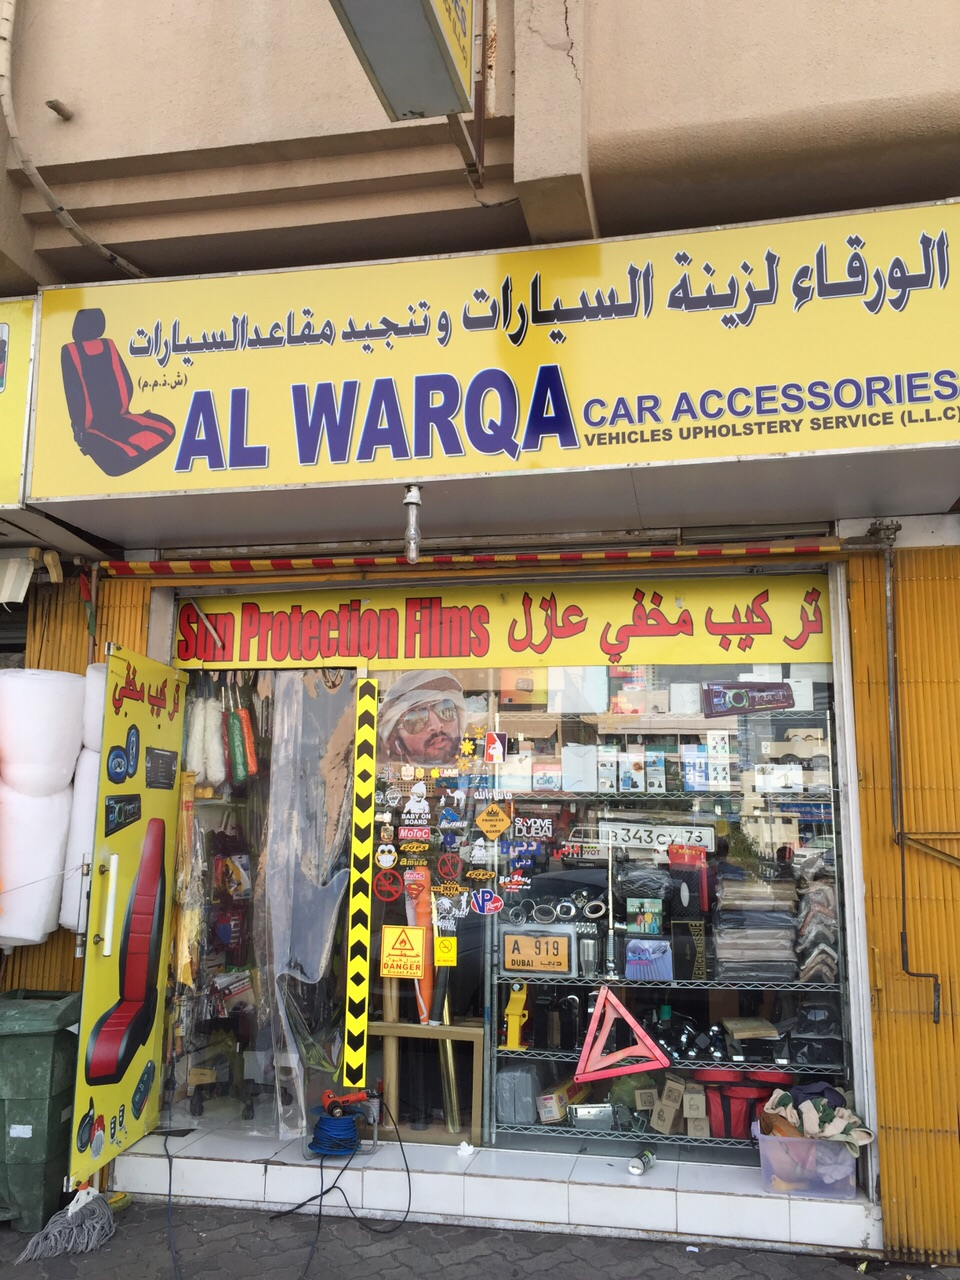 Al Warqa Car Accessories Vehicles Upholstery Service L L C